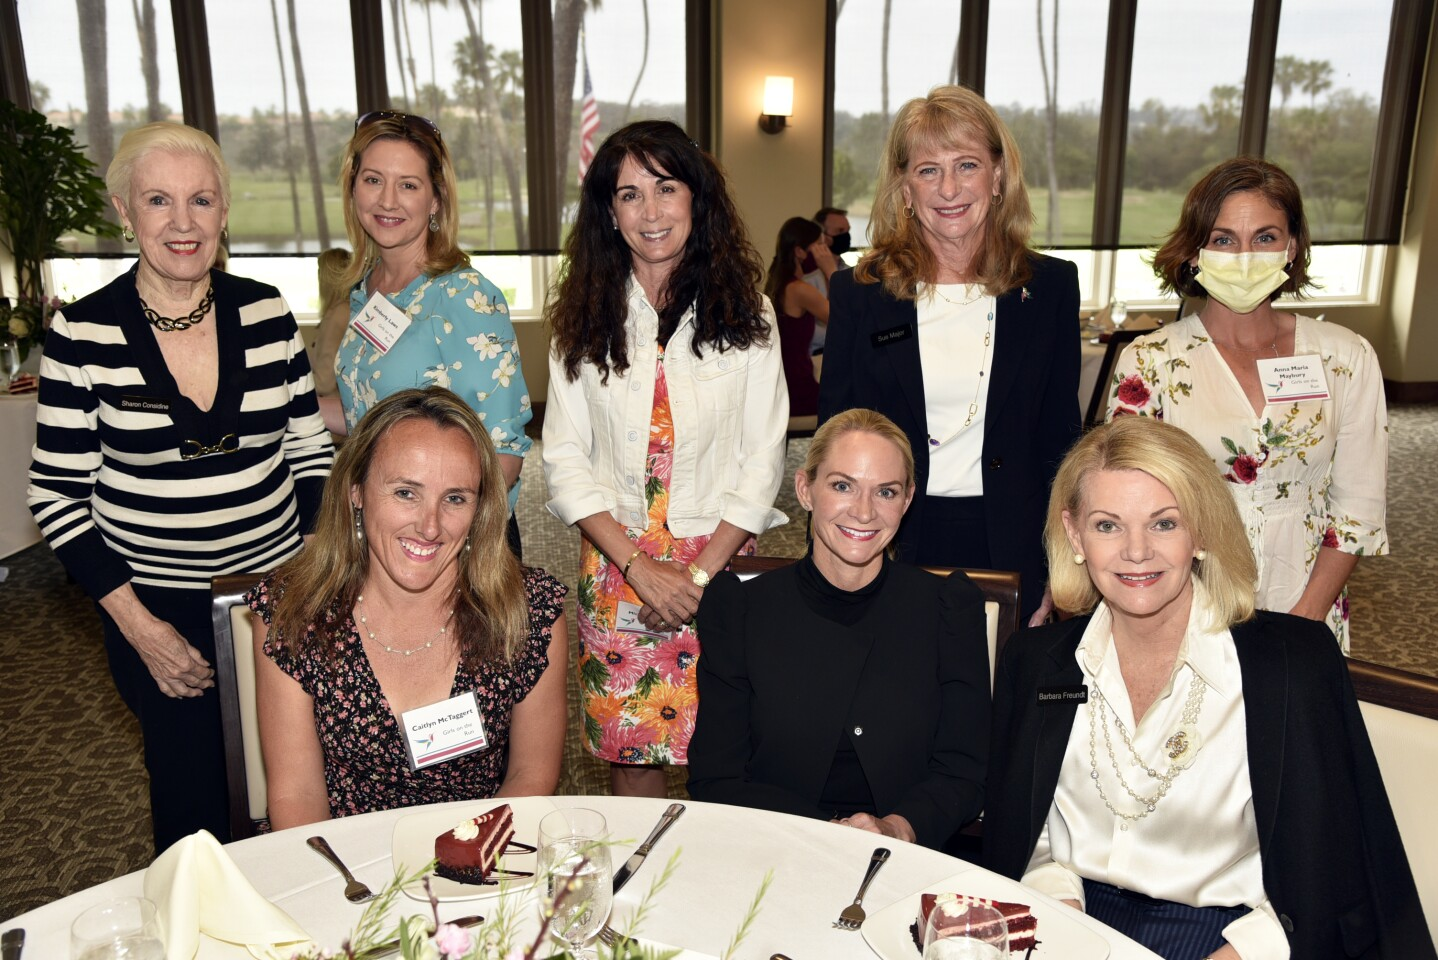 Sharon Considine. Kimberly Laws of grantee Girls on the Run, Michelle Pius of grantee Fresh Start Surgical Gifts, Sue Major, Anna Maria Maybury of grantee Girls on the Run. Seated: Caitlyn McTaggert of grantee Girls on the Run, McCall Pinnell, Barbara Freundt